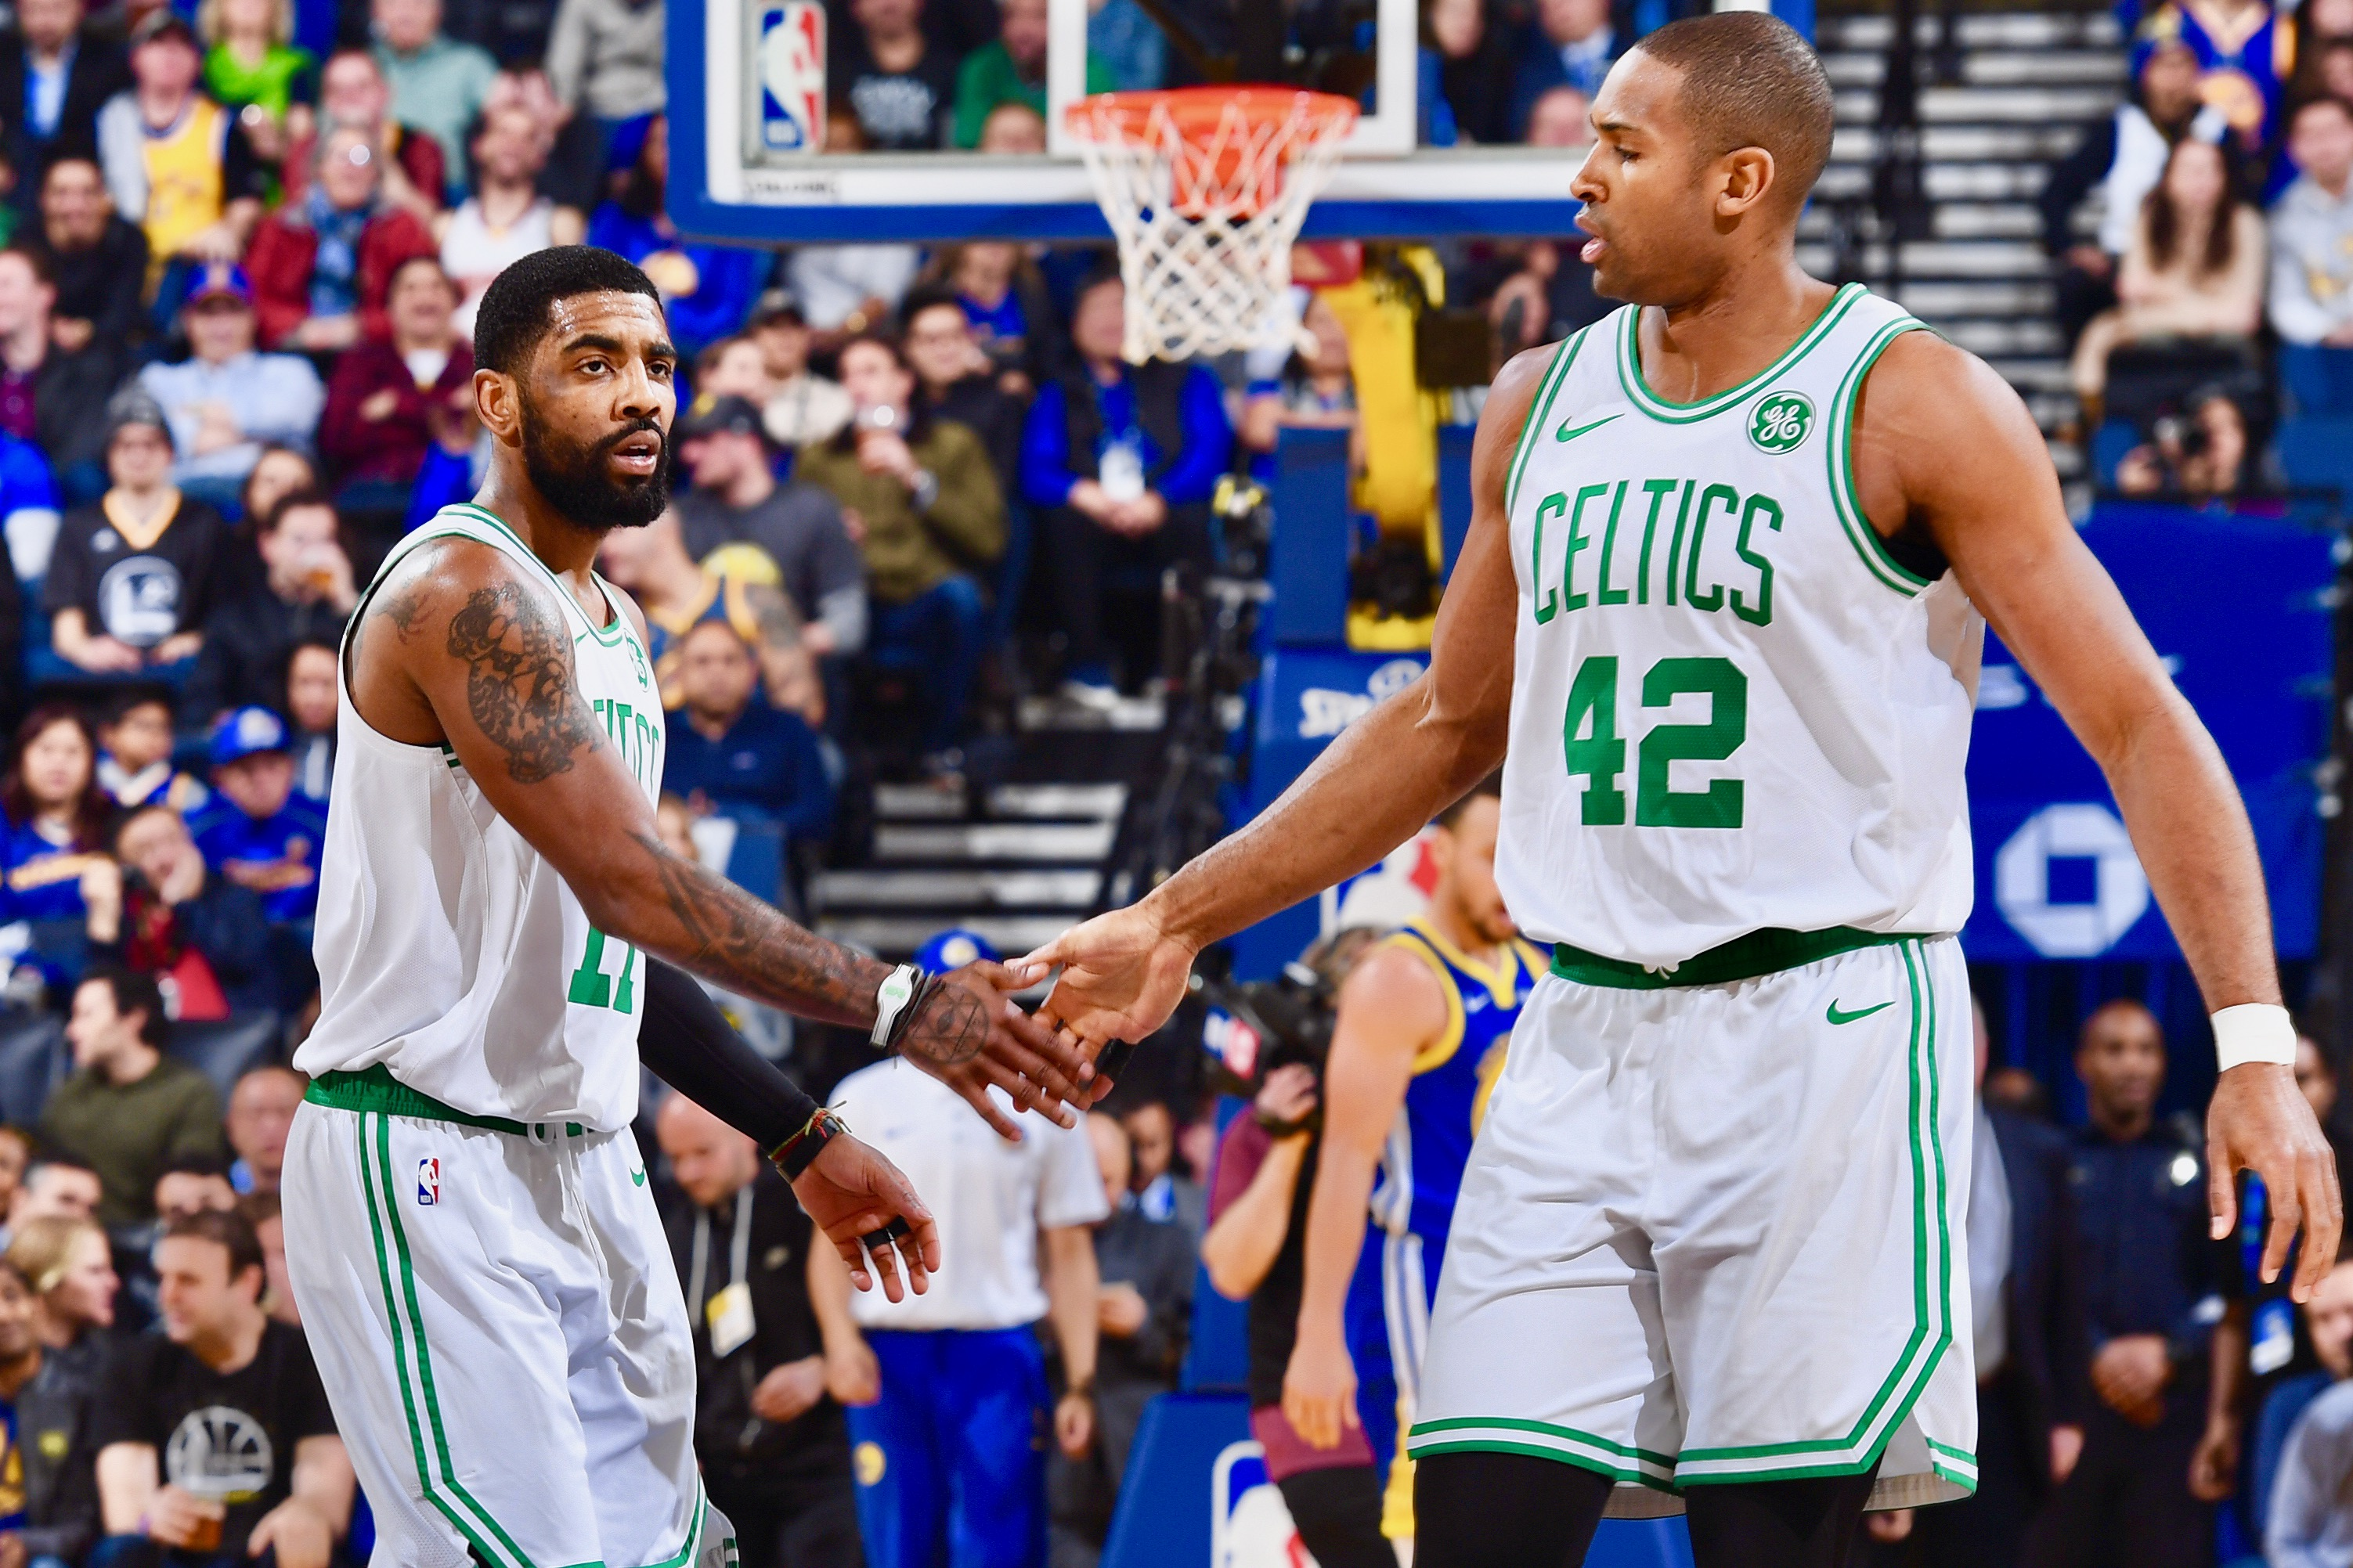 aca6f4d170f Is Social Media Addiction in the NBA Out of Control? | Bleacher Report |  Latest News, Videos and Highlights